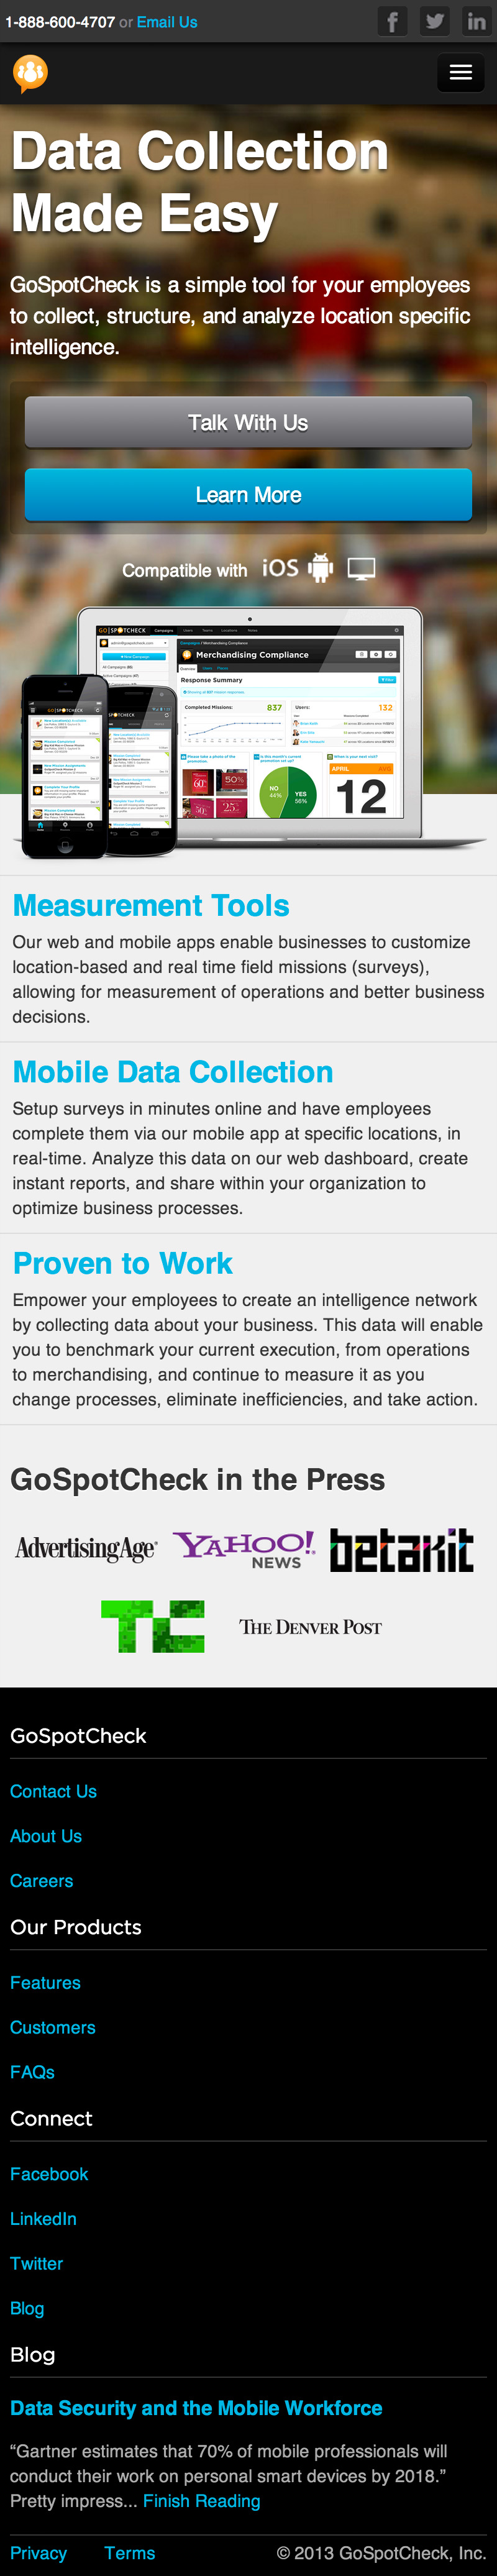 Gospotcheck-marketing_site-mobile-full